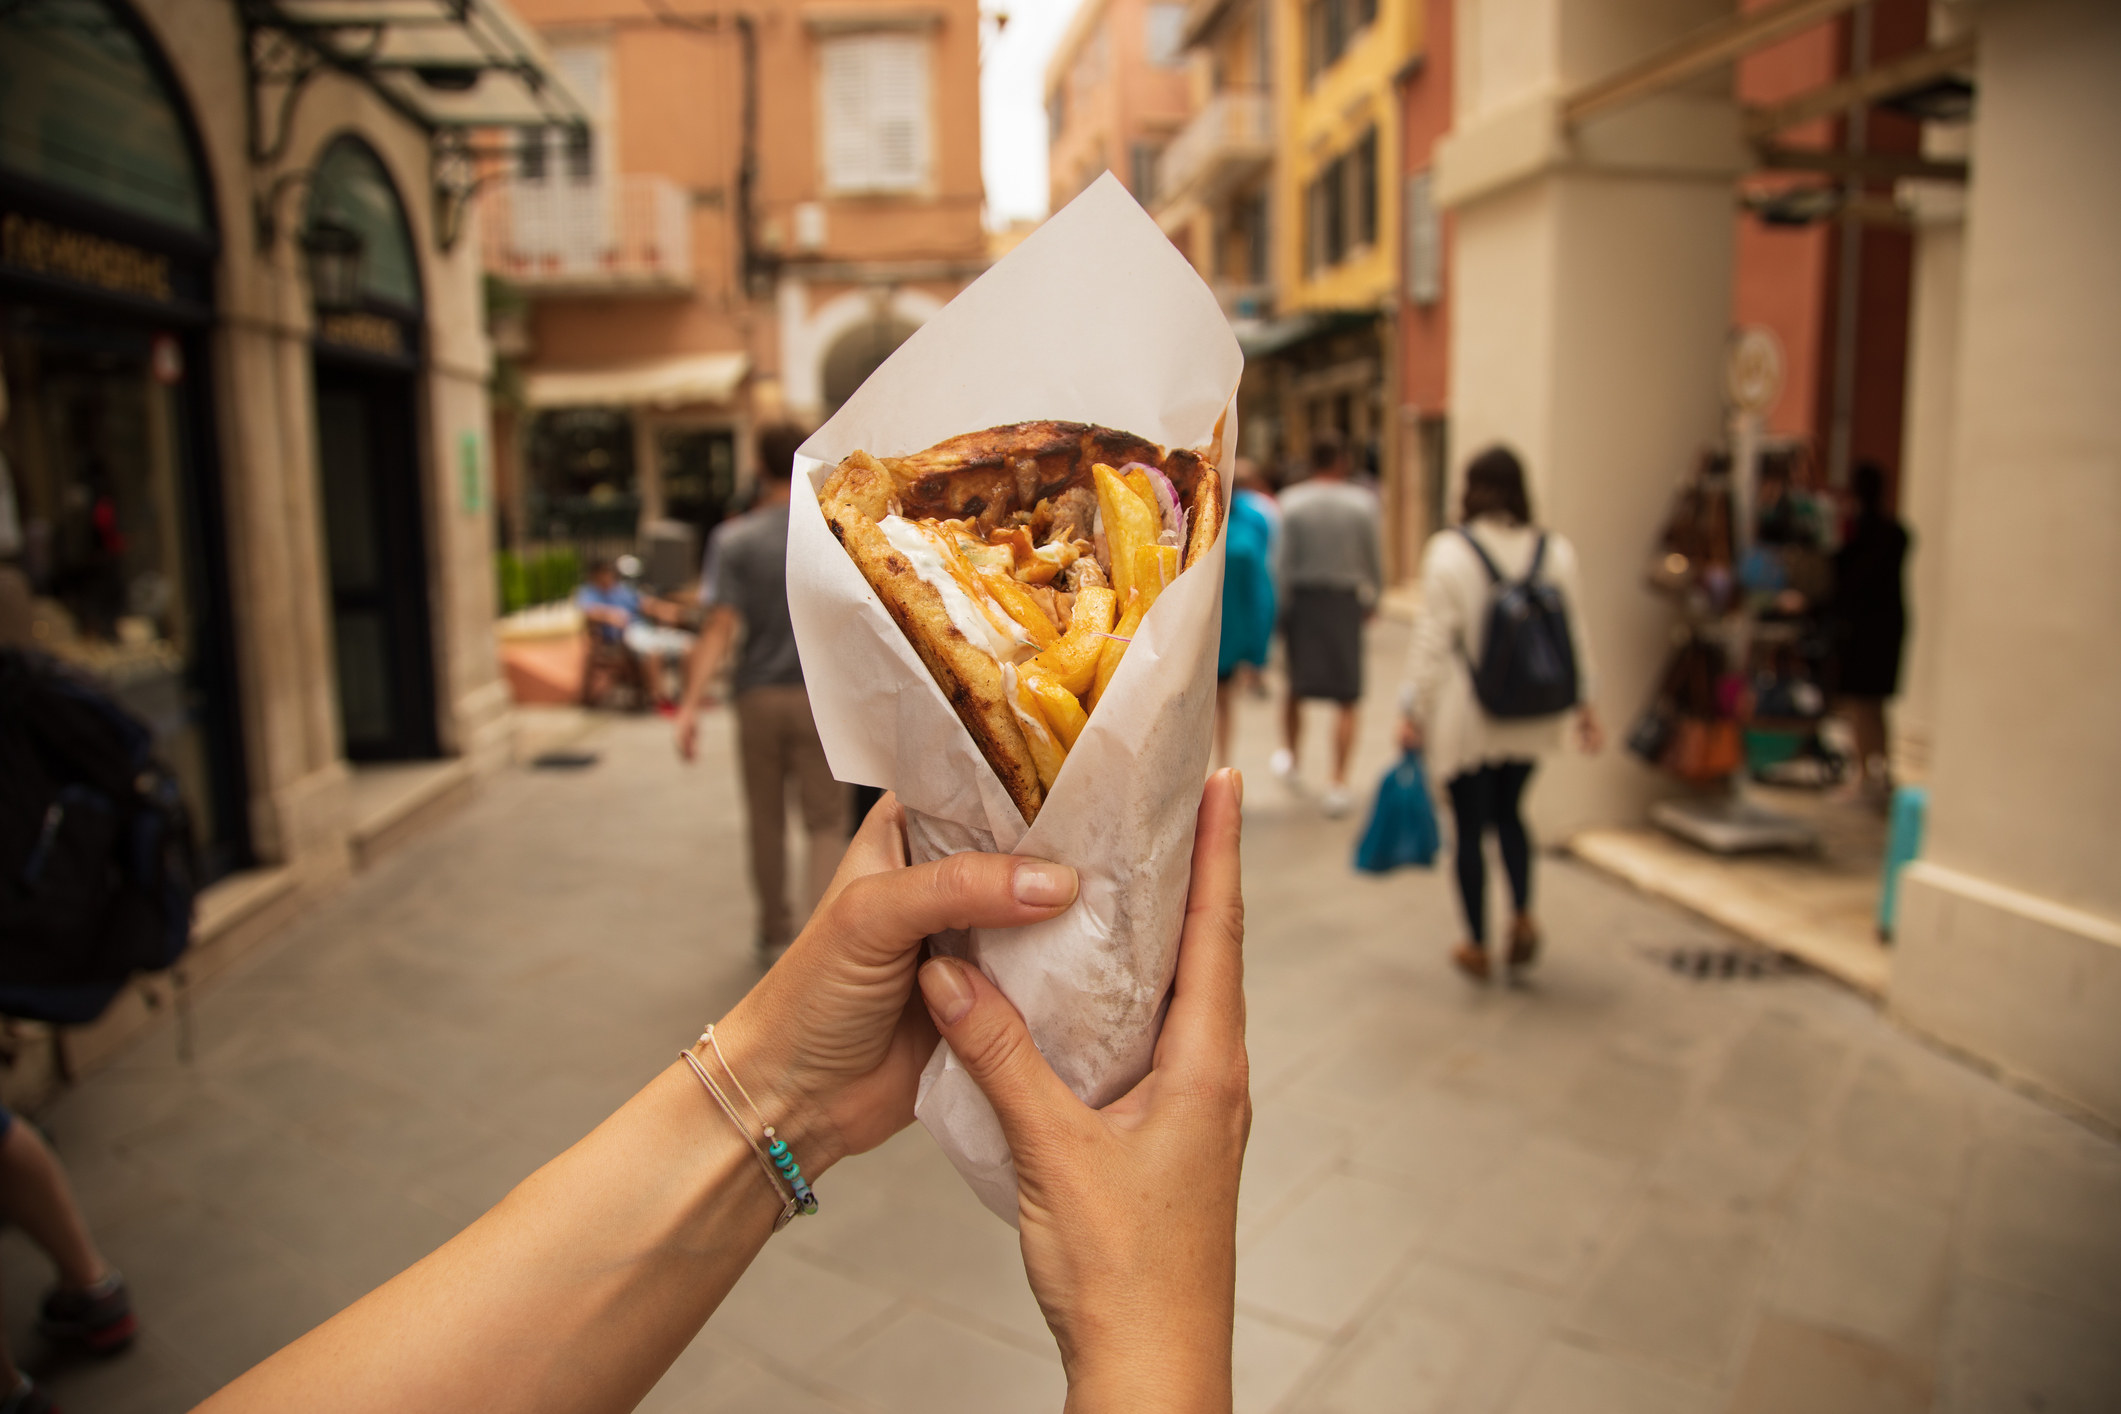 A gyro with fries.